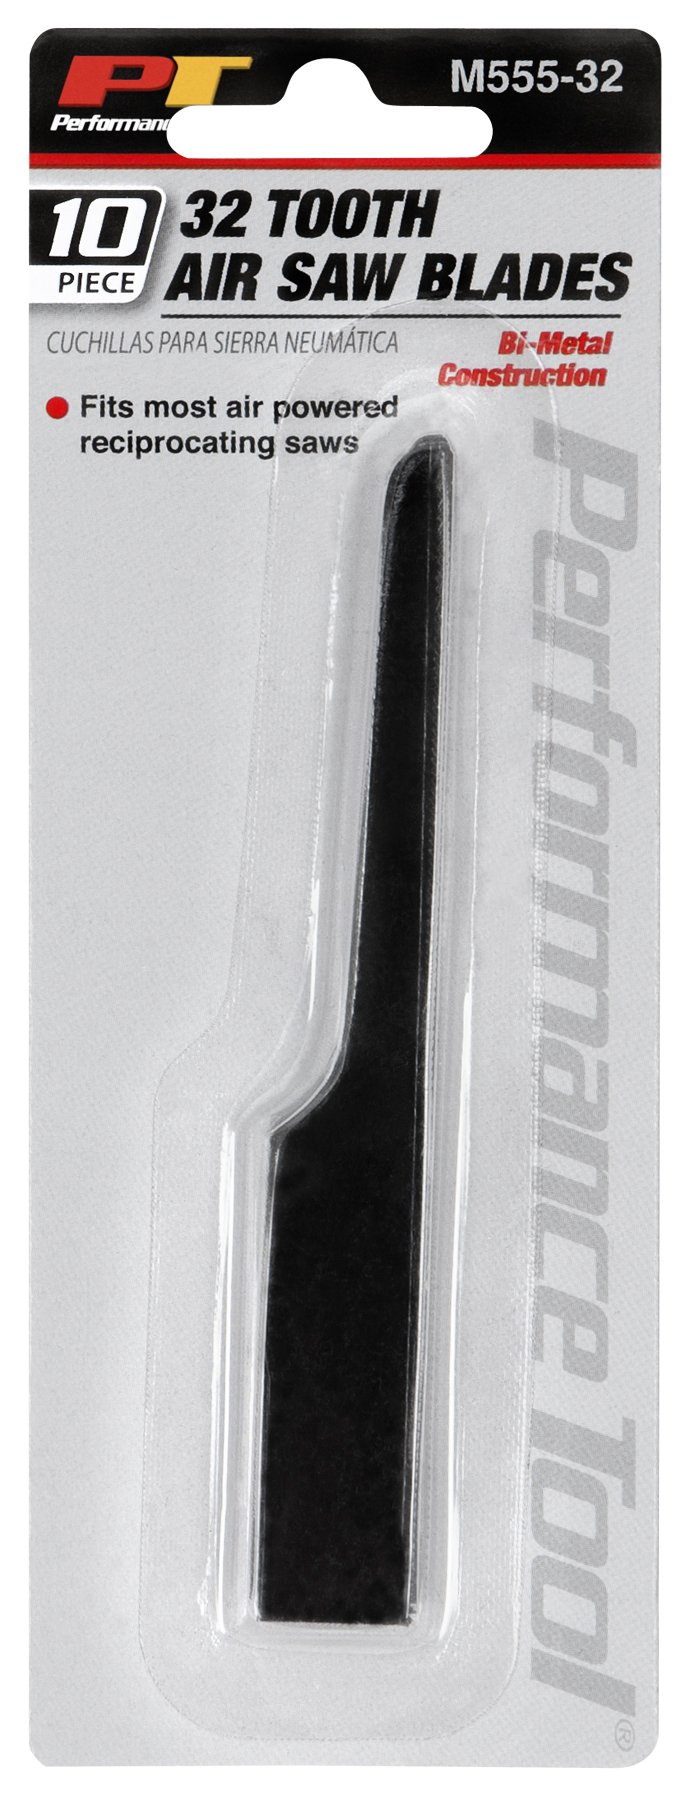 Performance Tool M555-32 Saw Blades 32 Teeth Per inch Bi-Metal Construction by Performance Tool